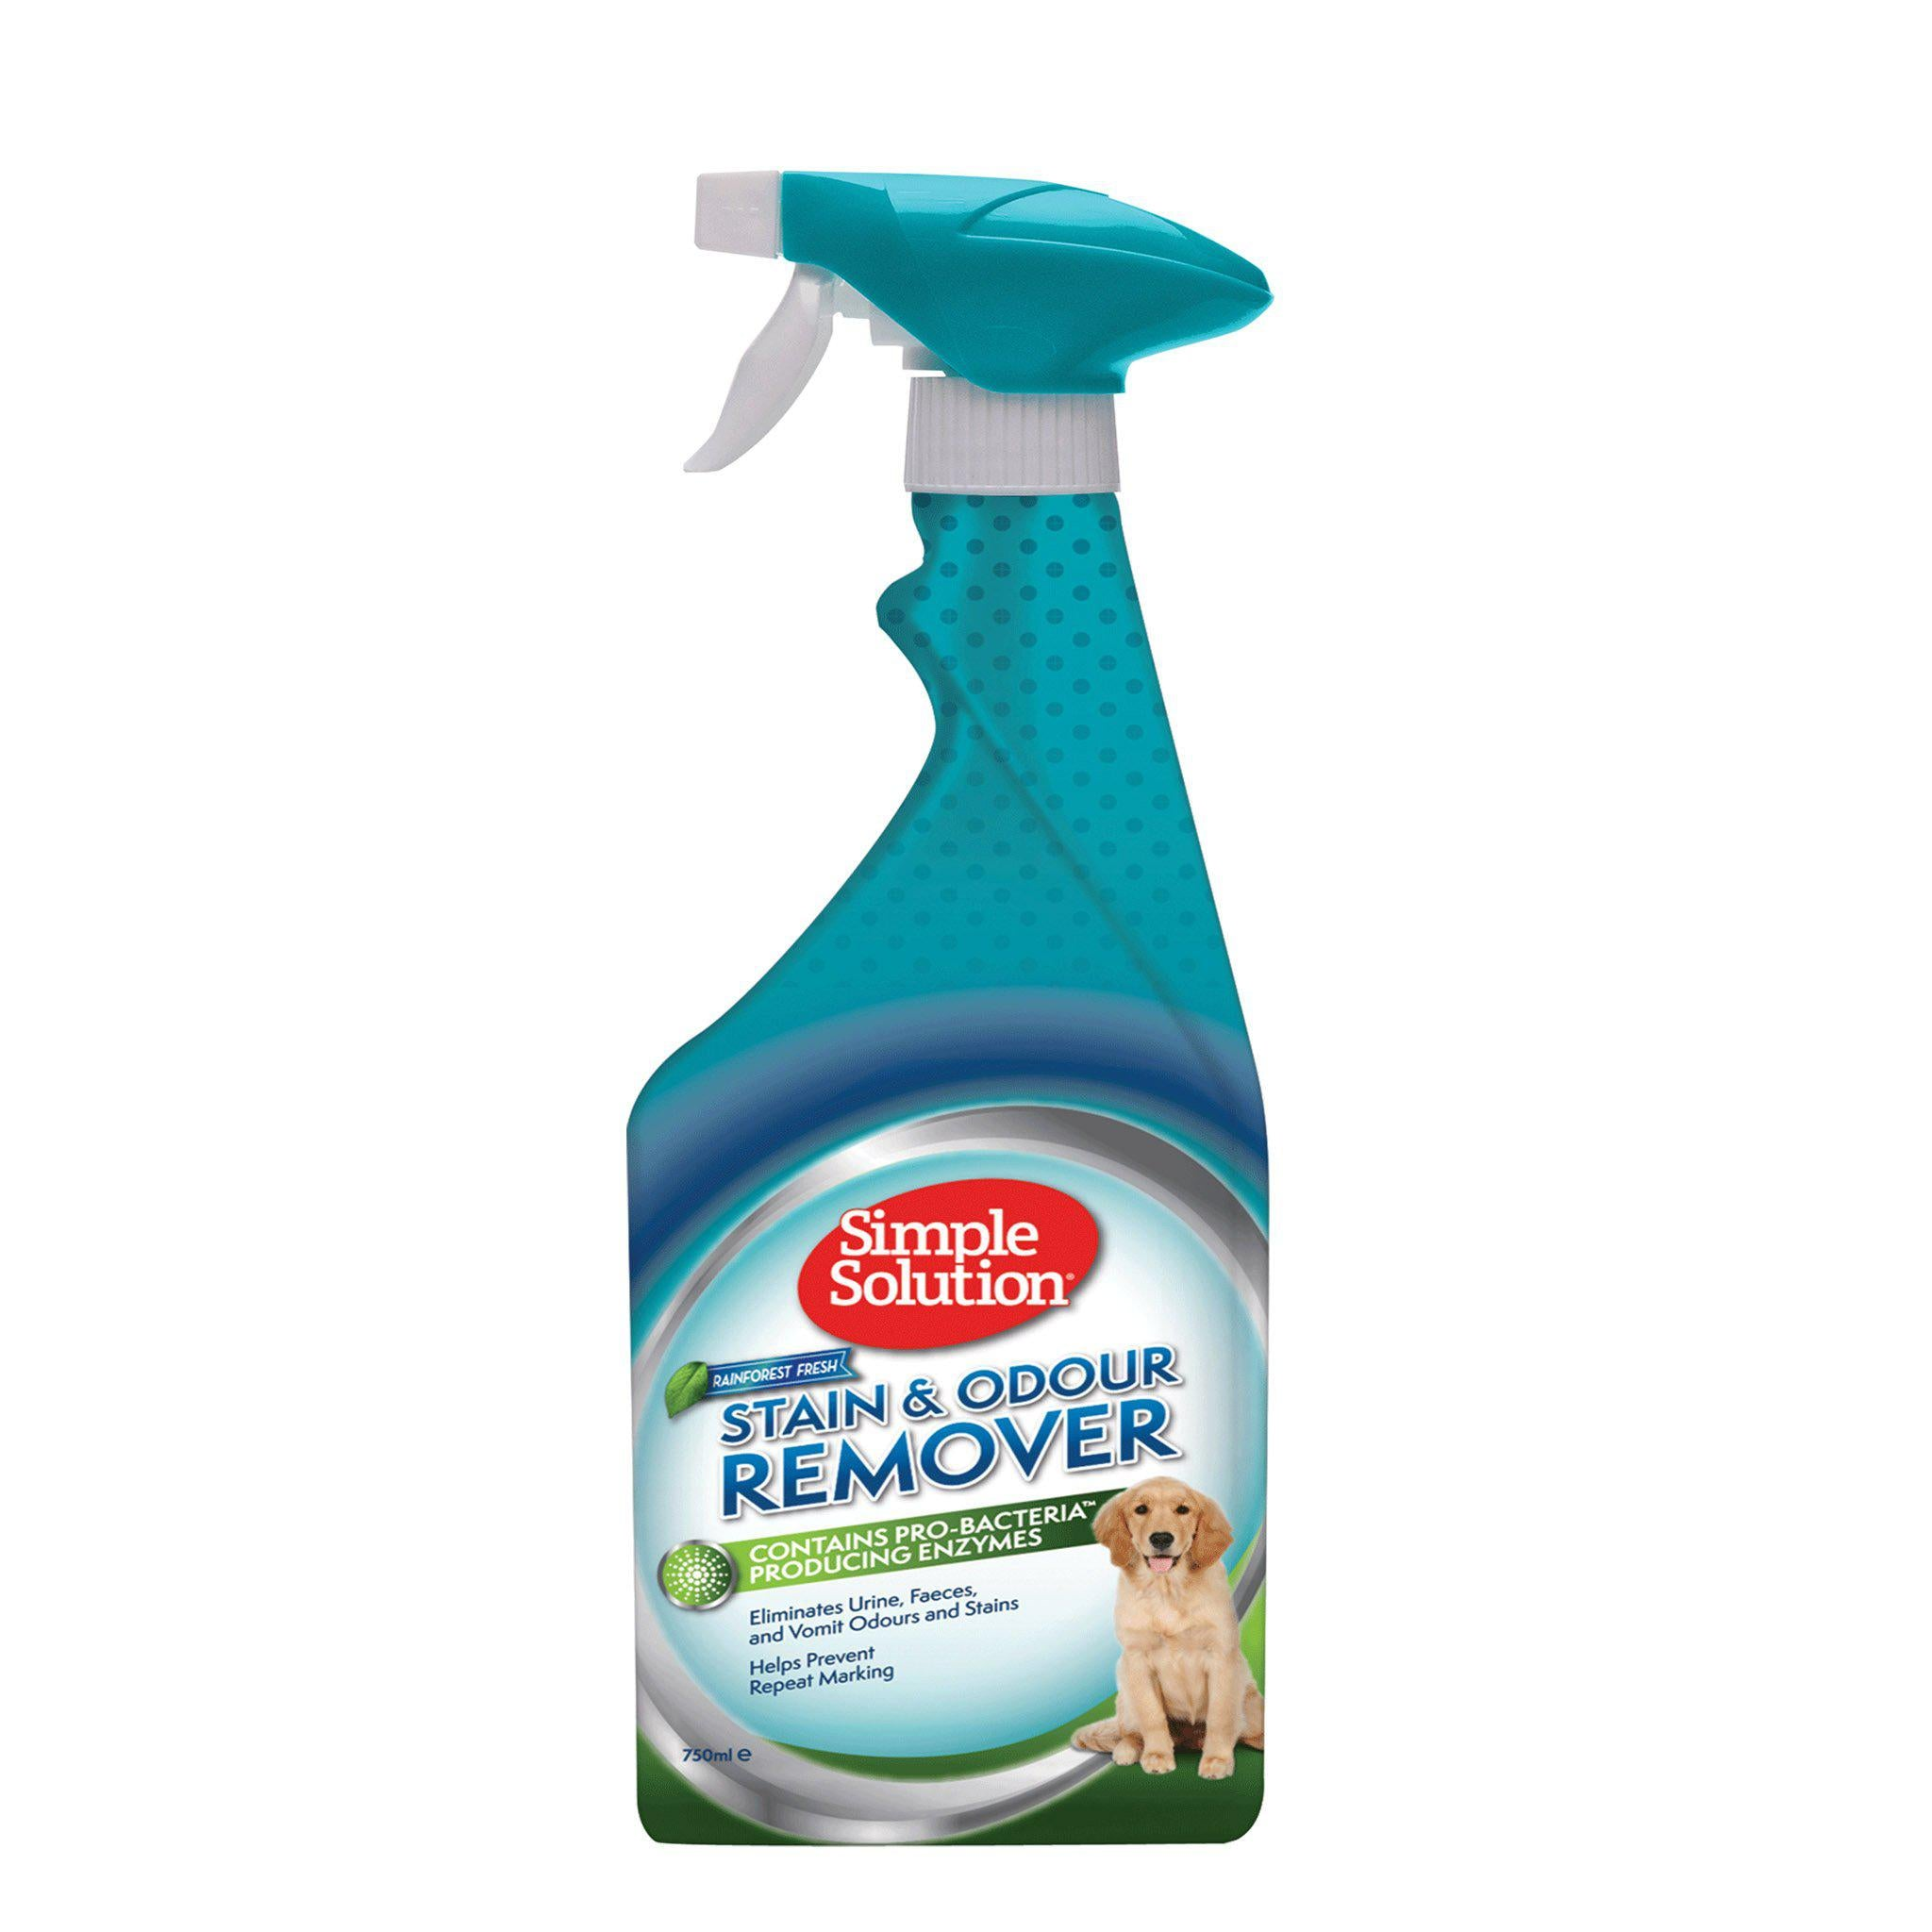 Simple Solution Dog Stain & Odour Remover 750ml - Rain Forest